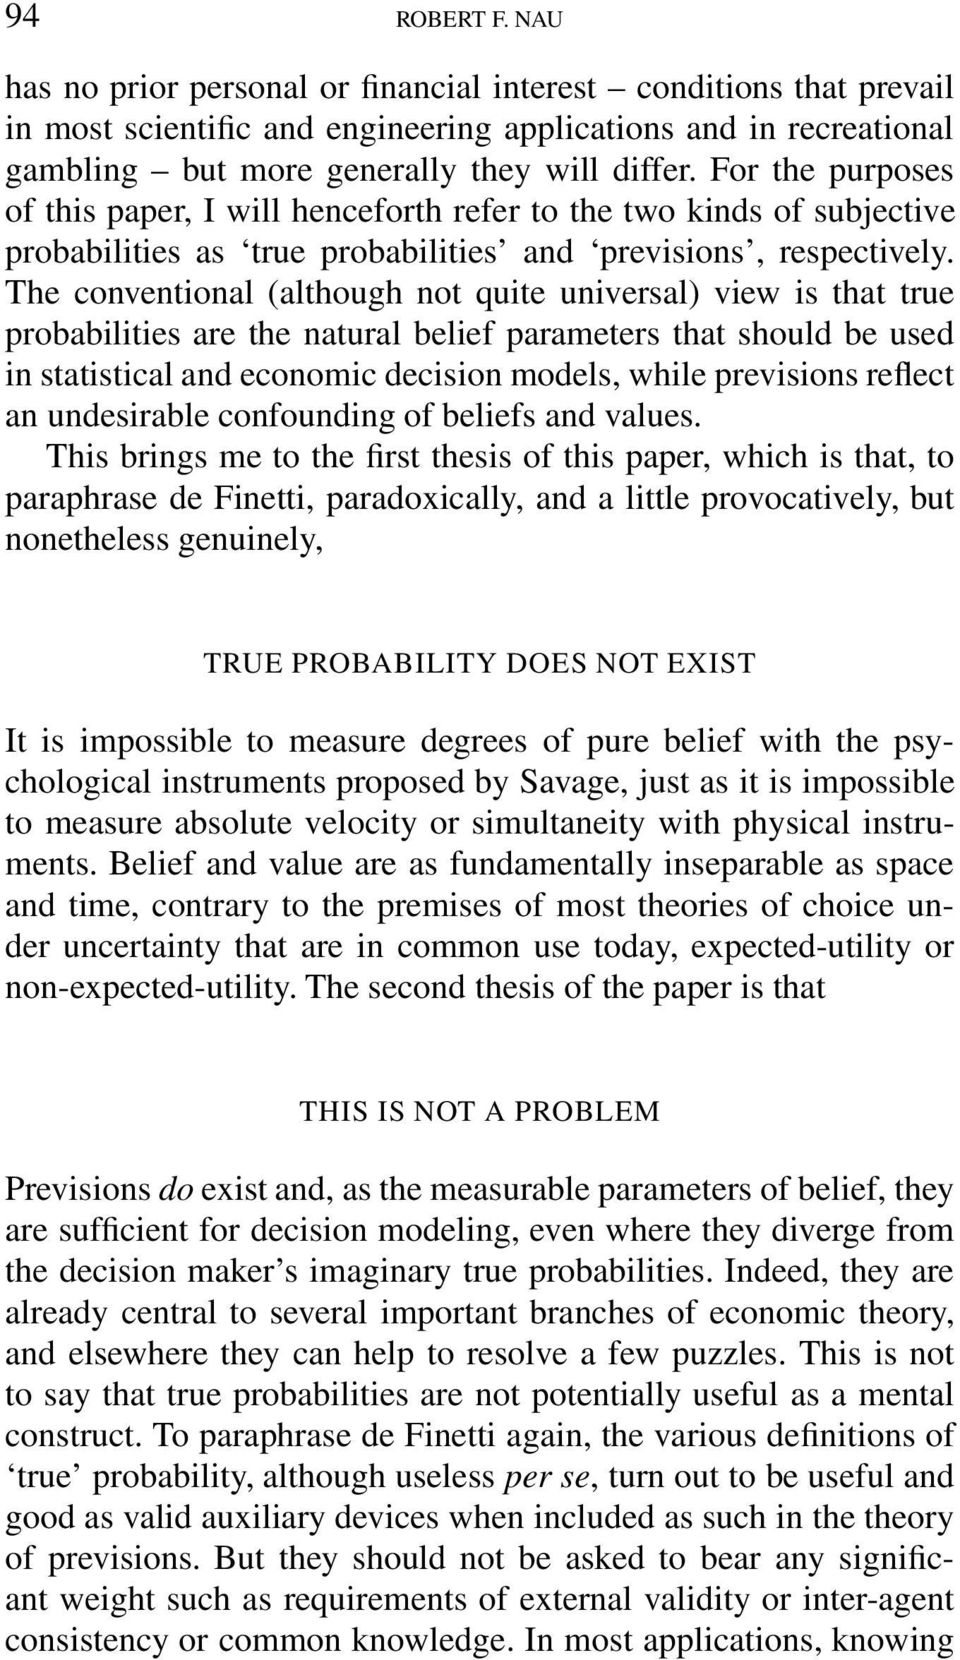 The conventional (although not quite universal) view is that true probabilities are the natural belief parameters that should be used in statistical and economic decision models, while previsions